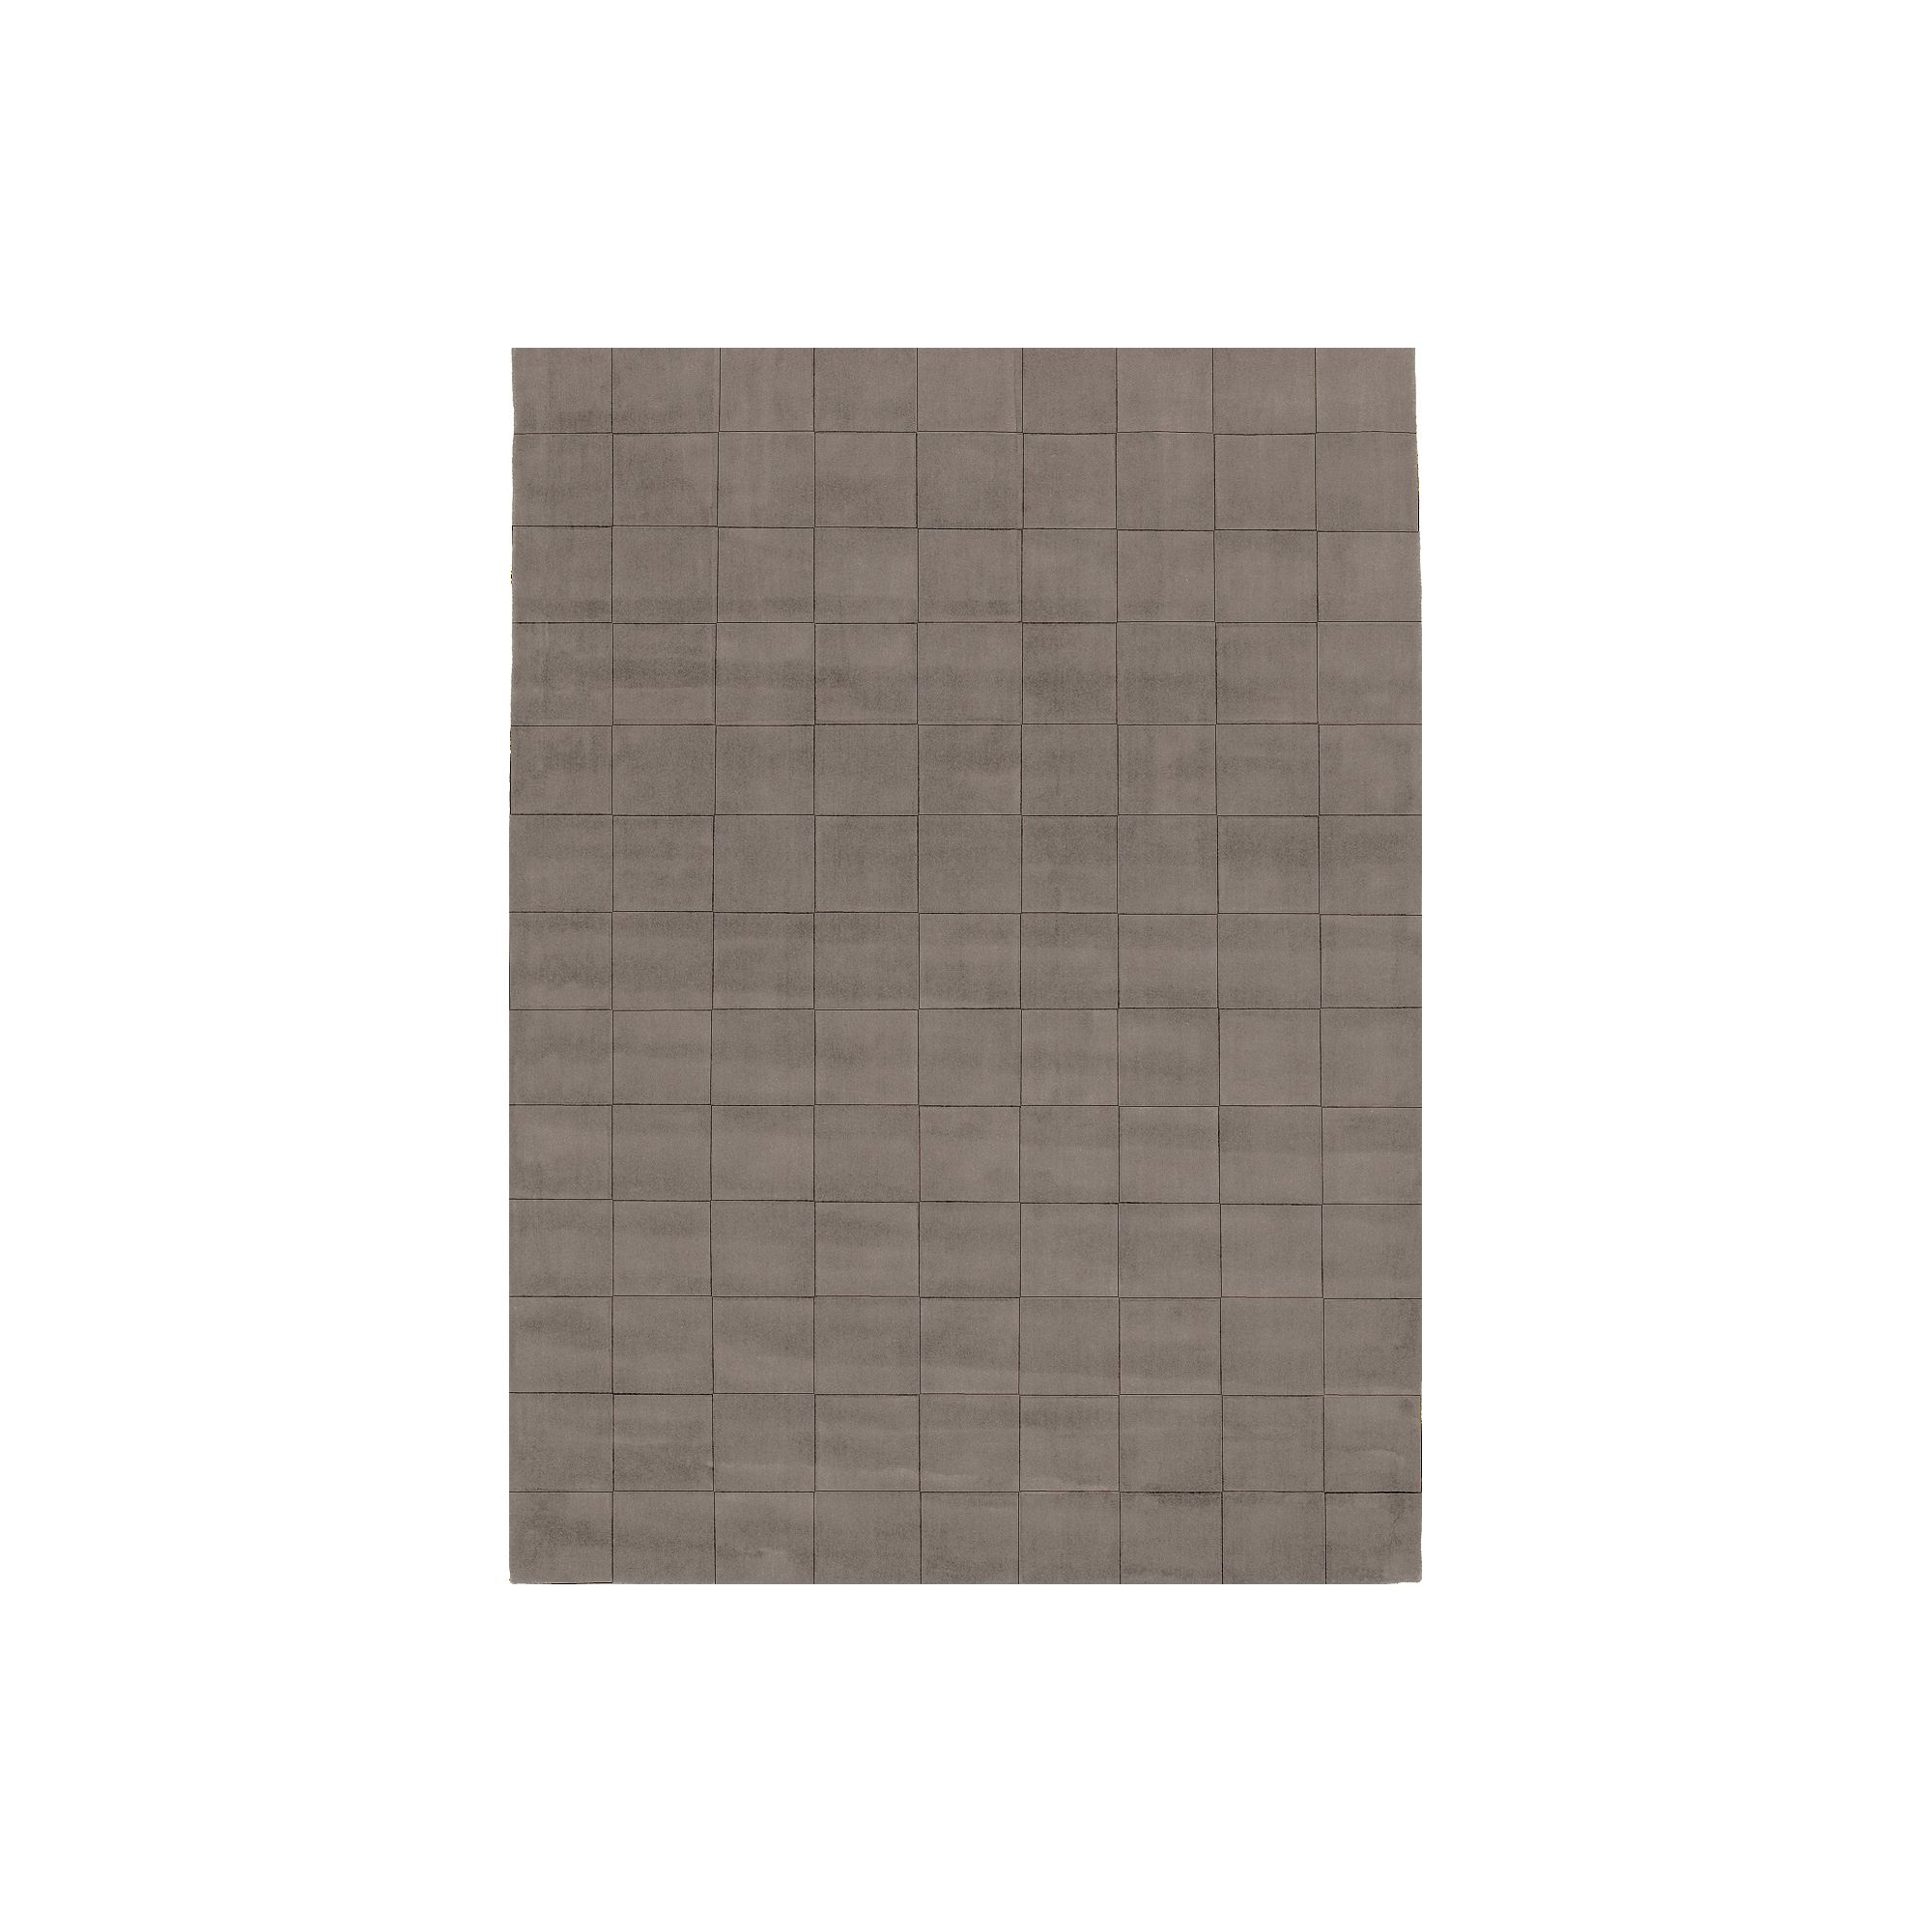 Linie Design Luzern Grey Rug - 300cm x 200cm at Tesco Direct